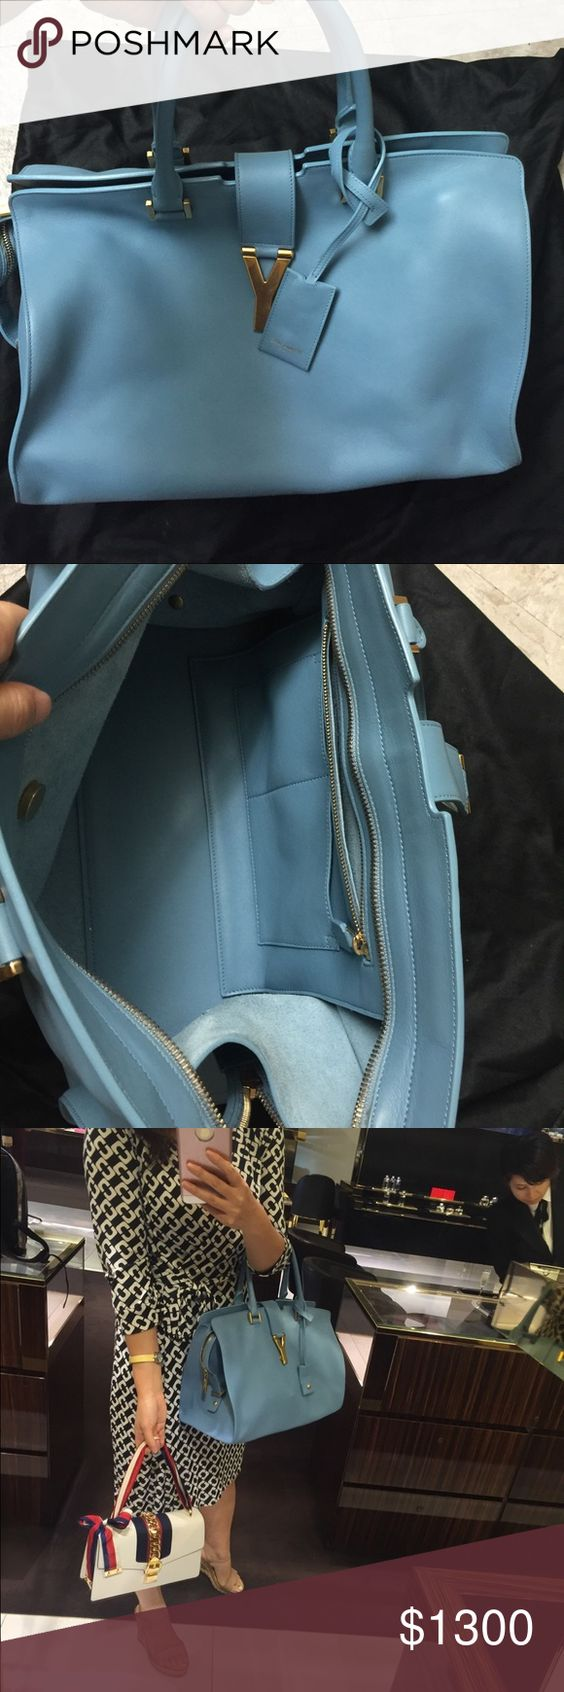 Anth ysl cabas large size gorgeous color Excellent condition . Come with dust bag and cards. Yves Saint Laurent Bags Clutches & Wristlets